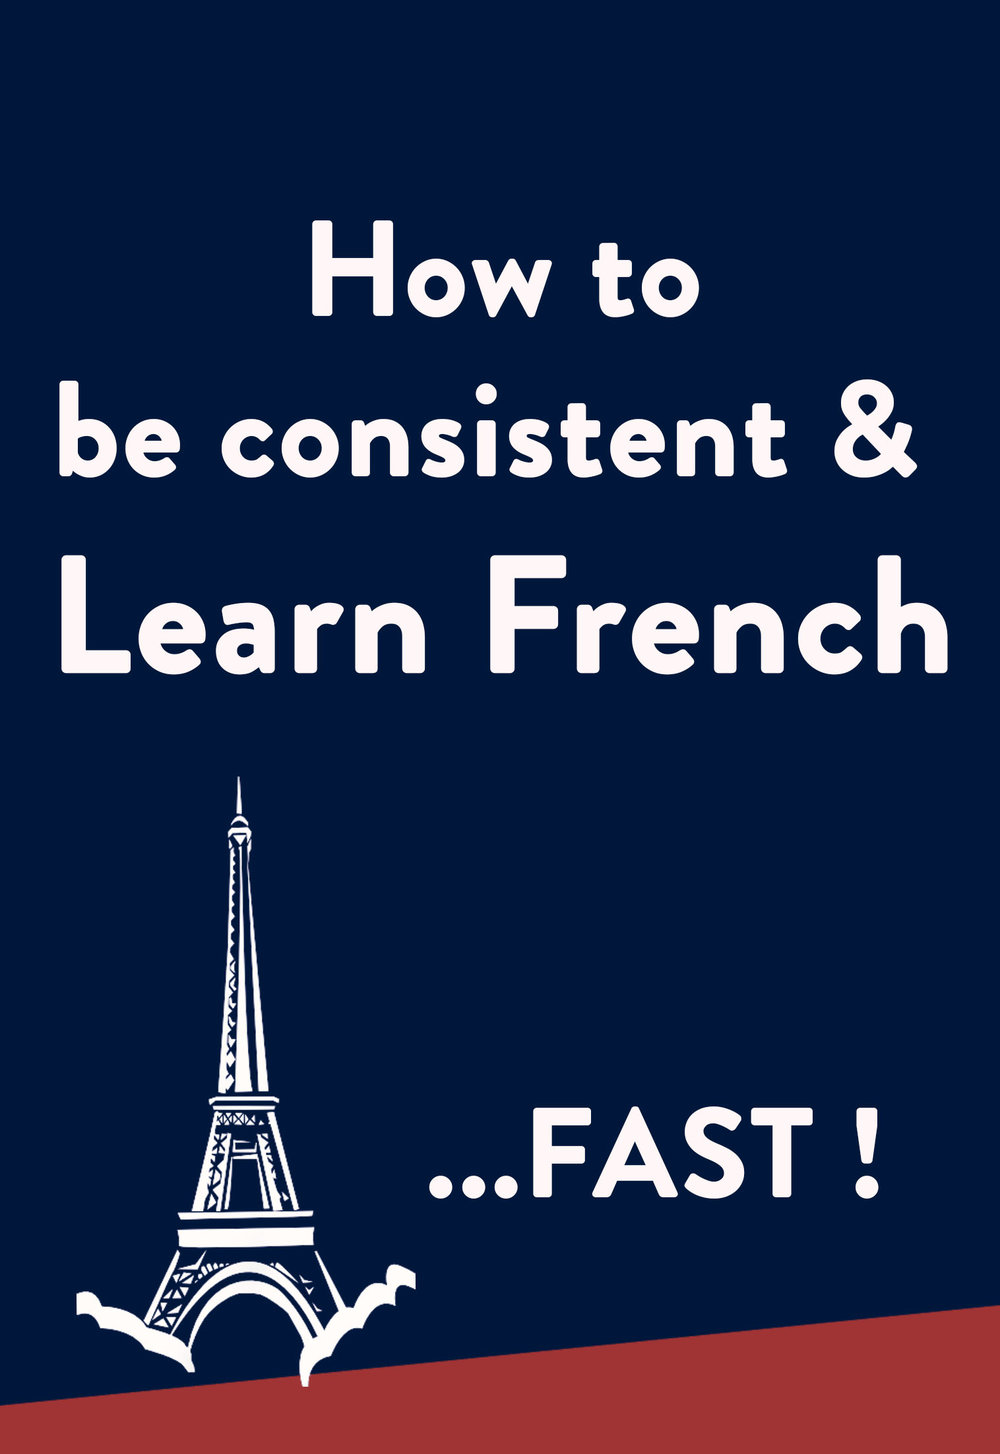 How to learn French fast: be consistent - stick to your French study - 5 tips from a language learning expert